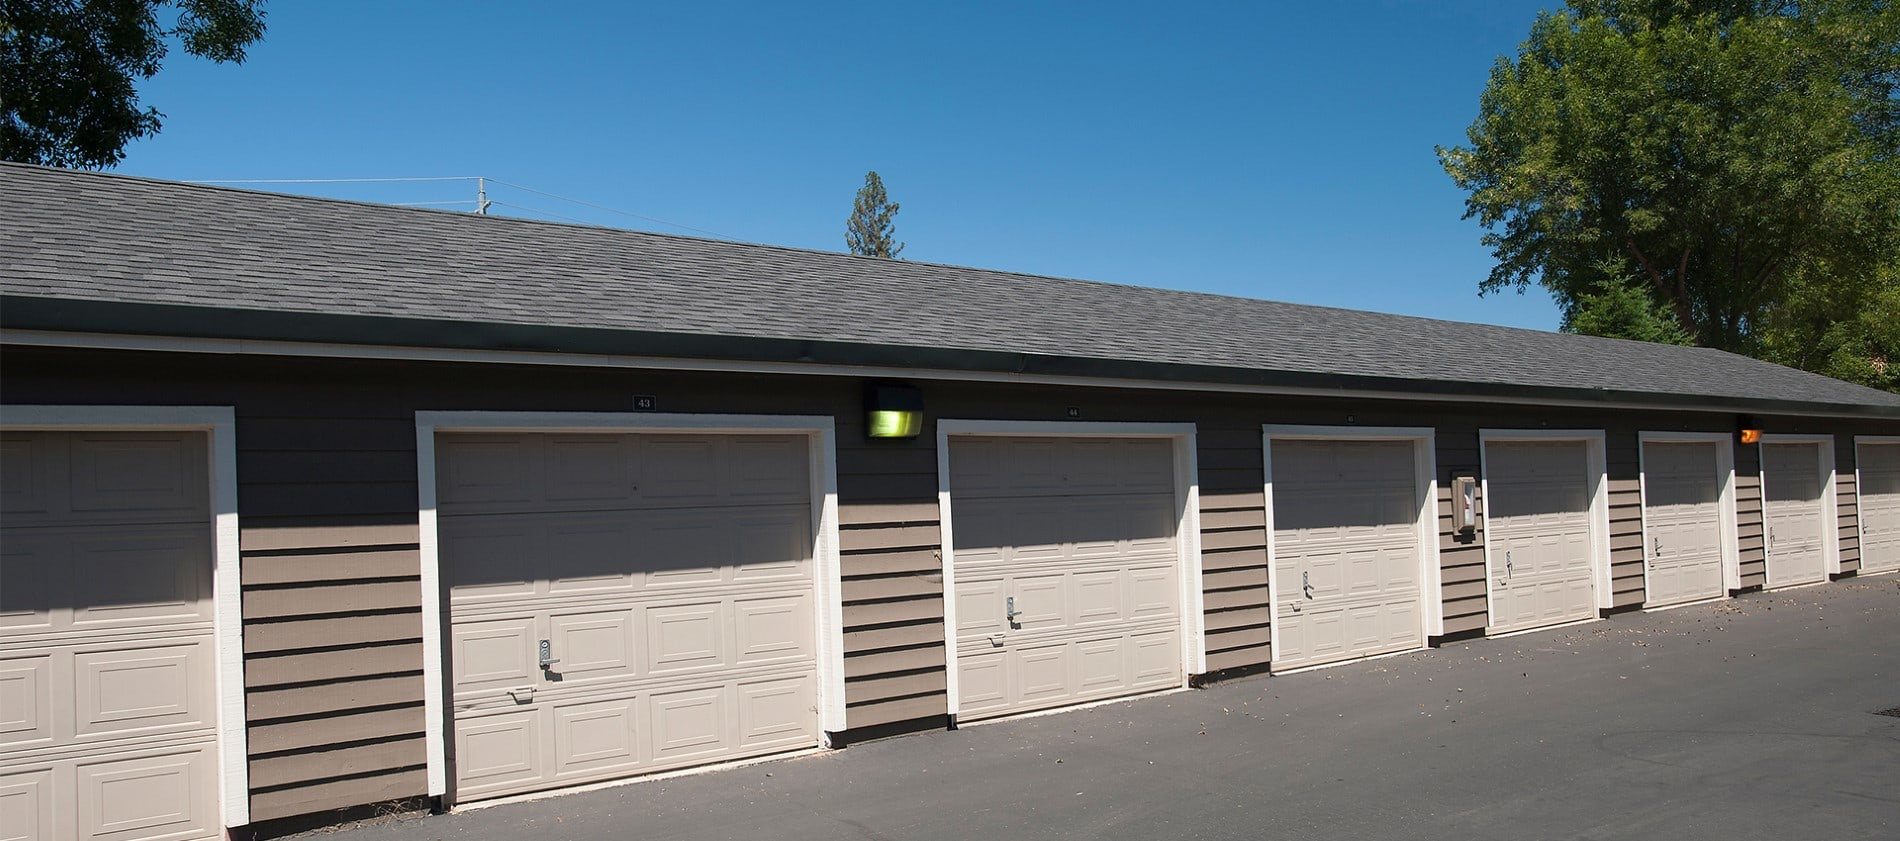 Garages at Reserve at Capital Center Apartment Homes in Rancho Cordova, CA